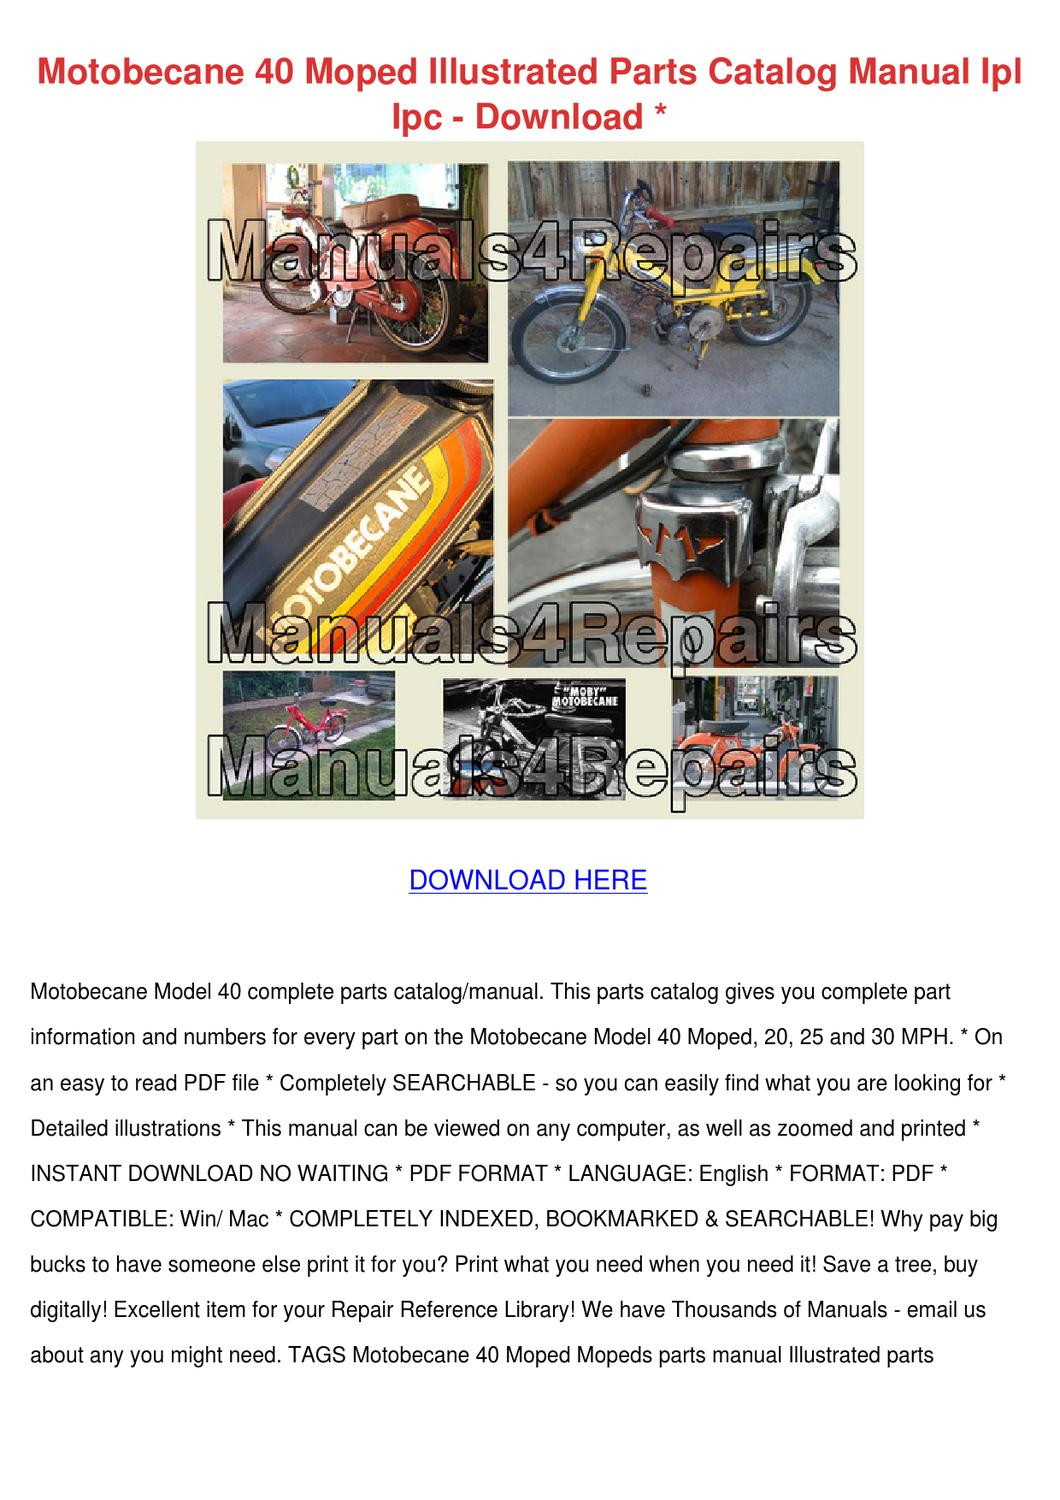 Motobecane 40 Moped Illustrated Parts Catalog by Jung Gilcreast ...